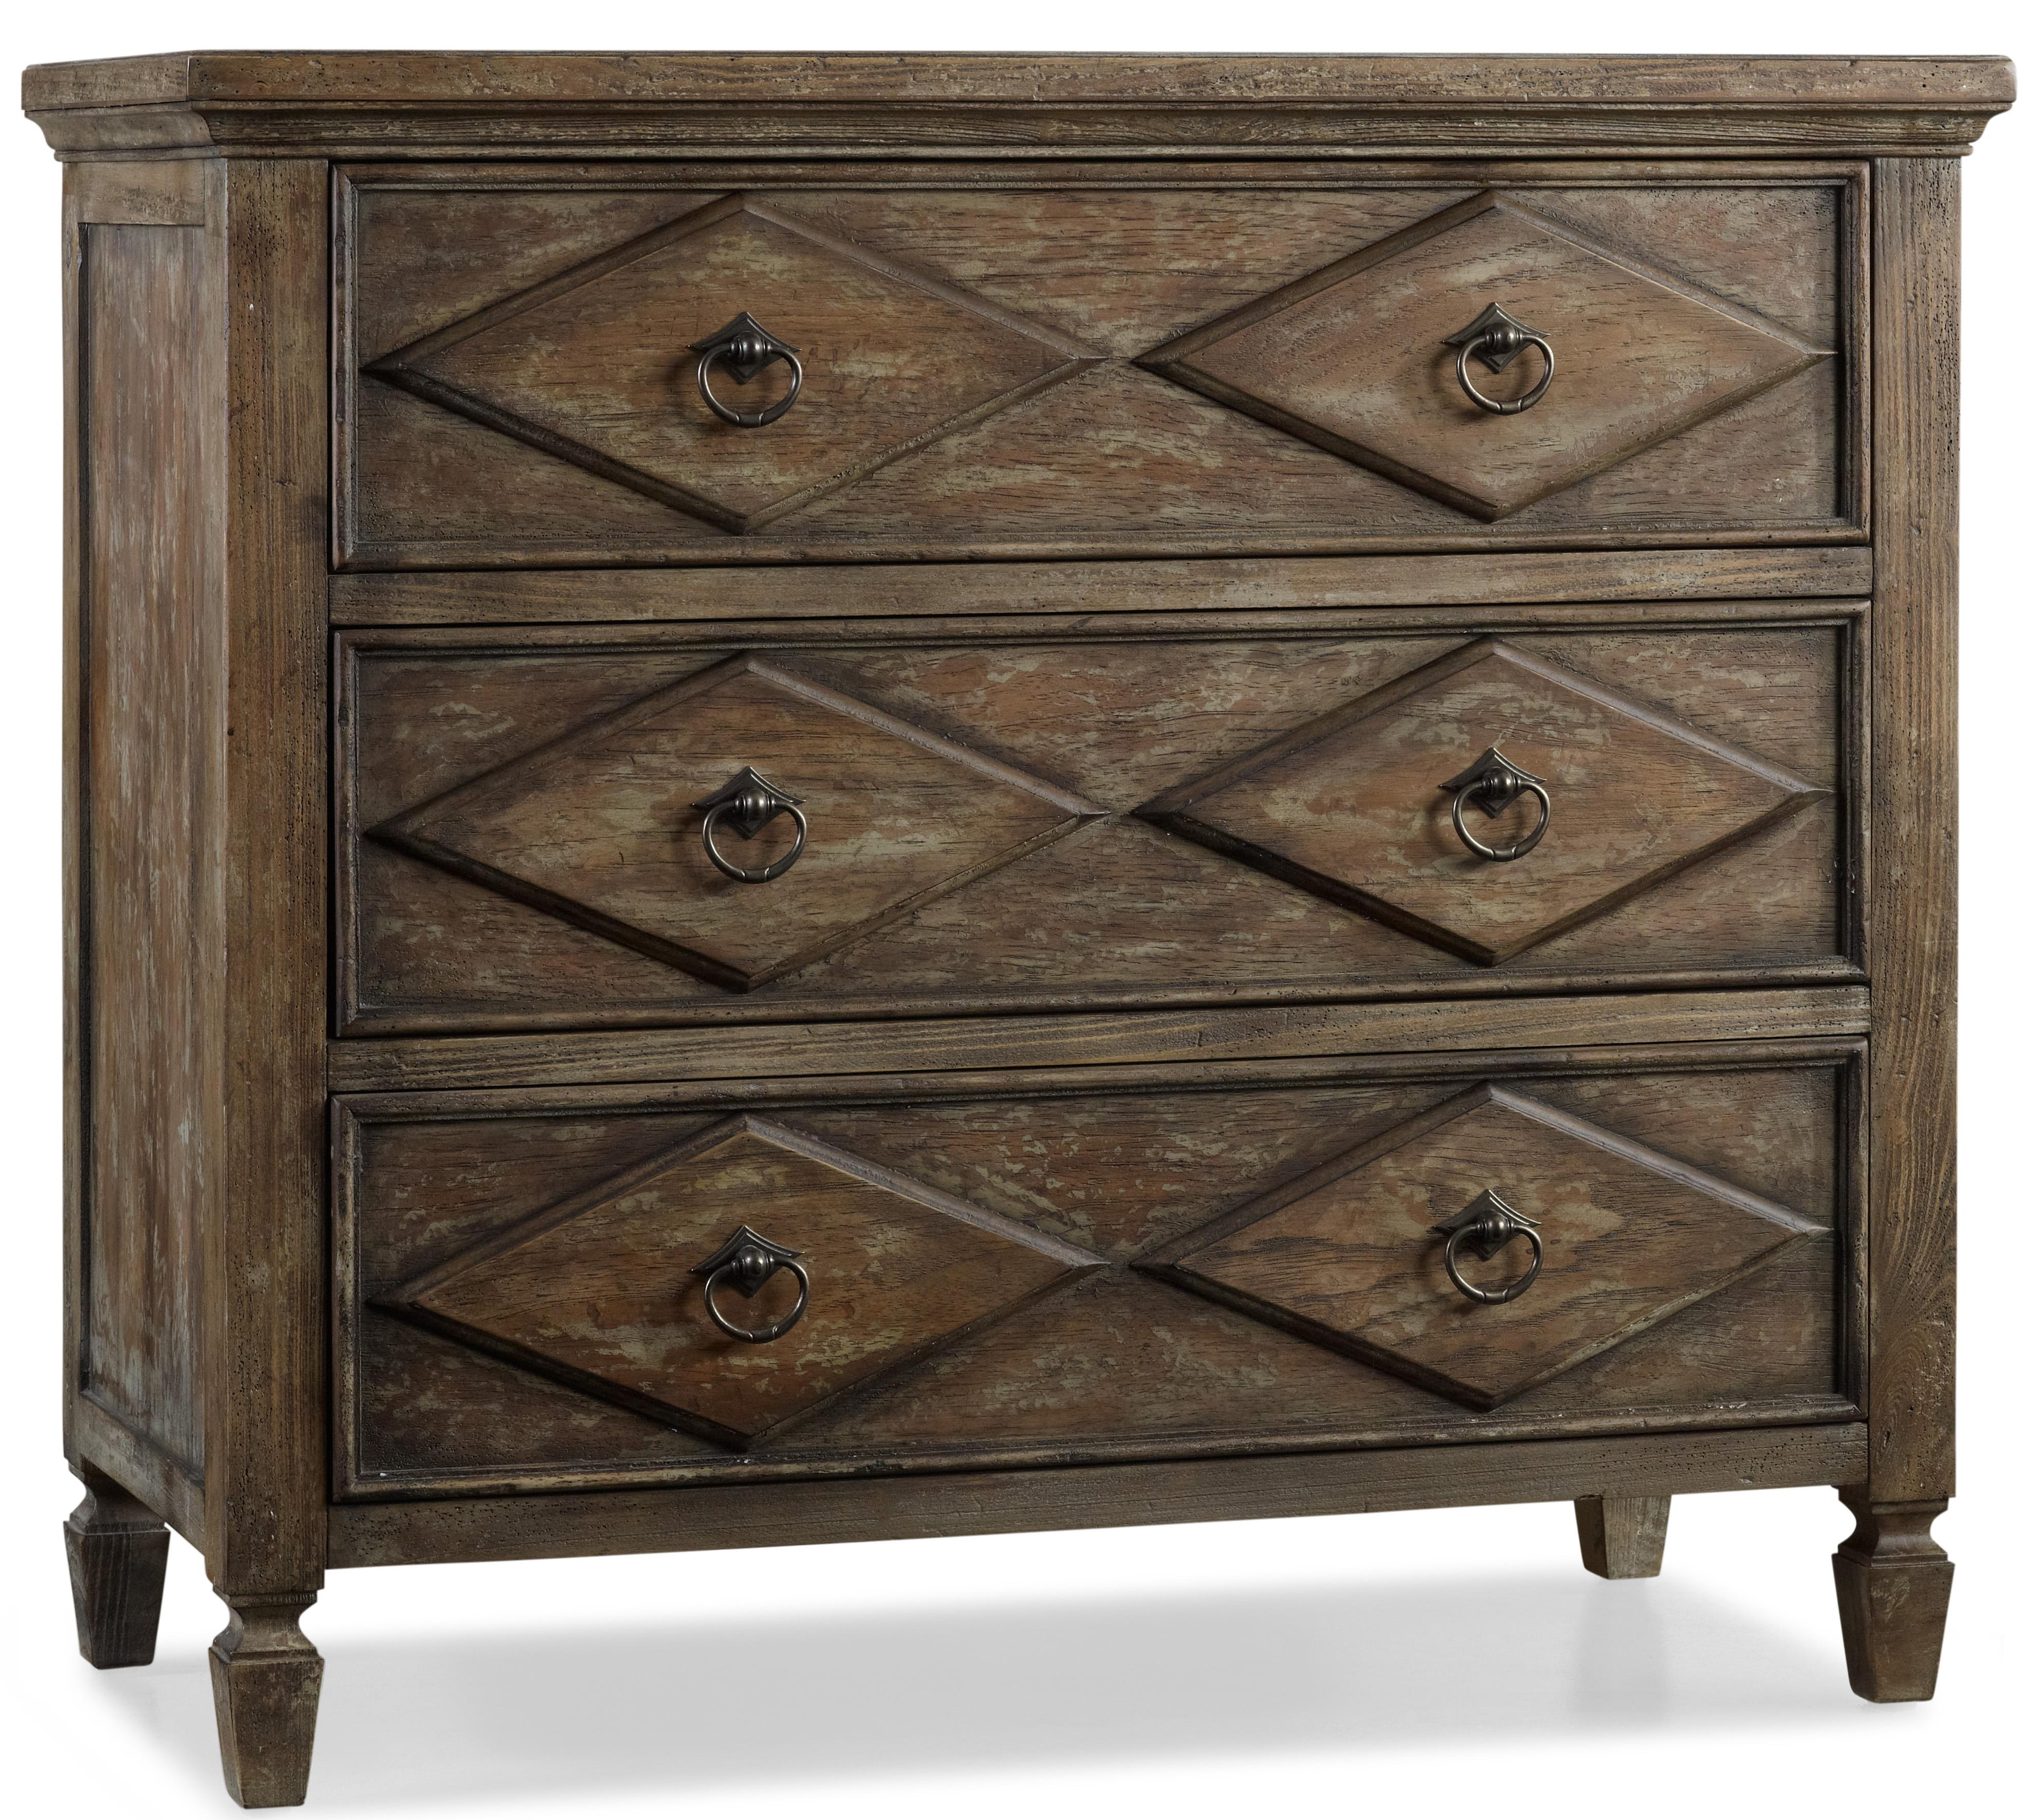 Hooker Furniture Rhapsody Diamond Chest - Item Number: 5074-85001